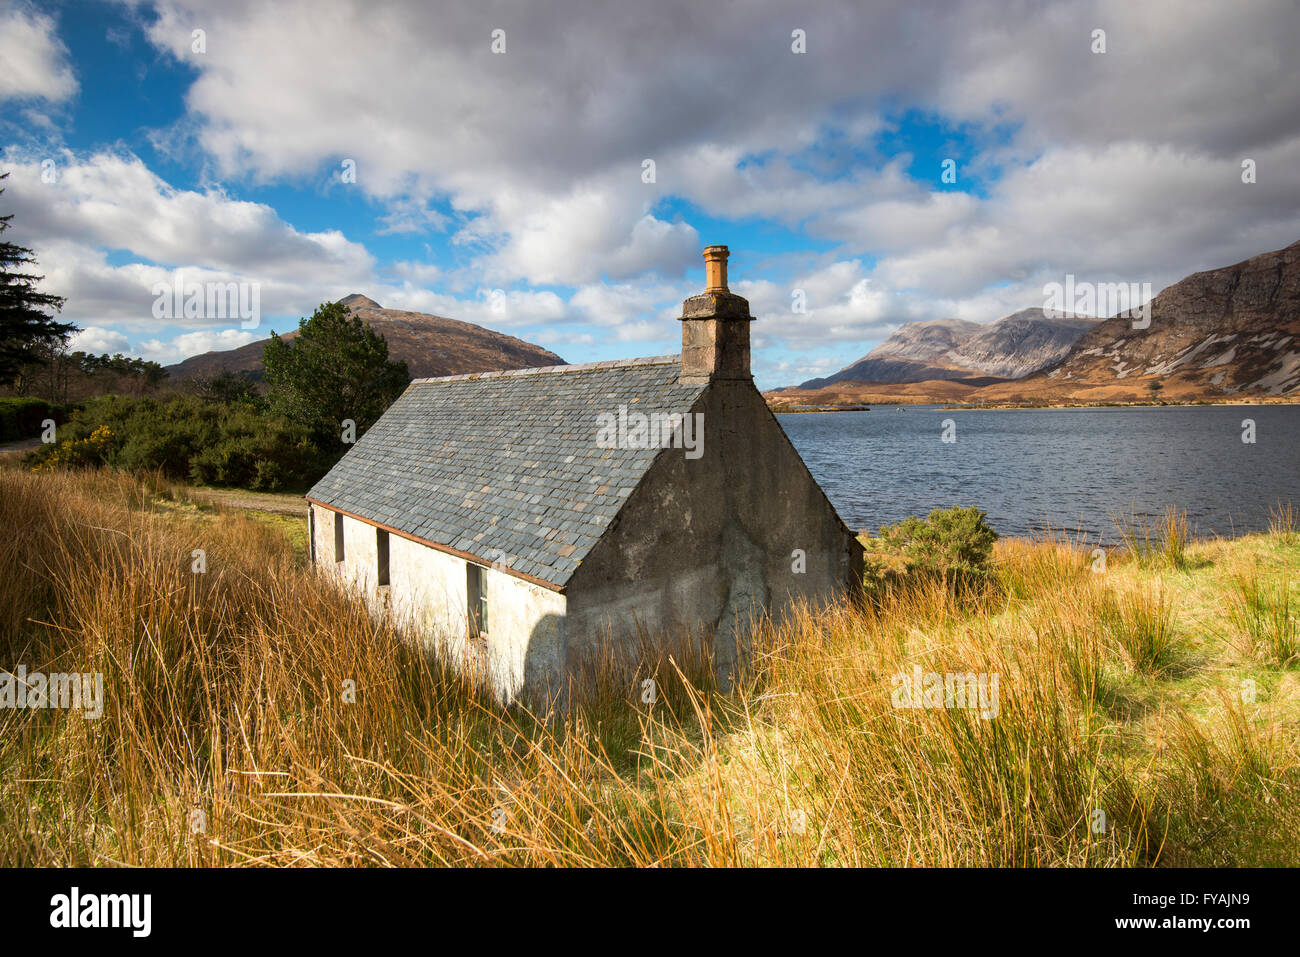 Abandoned crofters cottage by Loch More, Sutherland Scotland UK - Stock Image